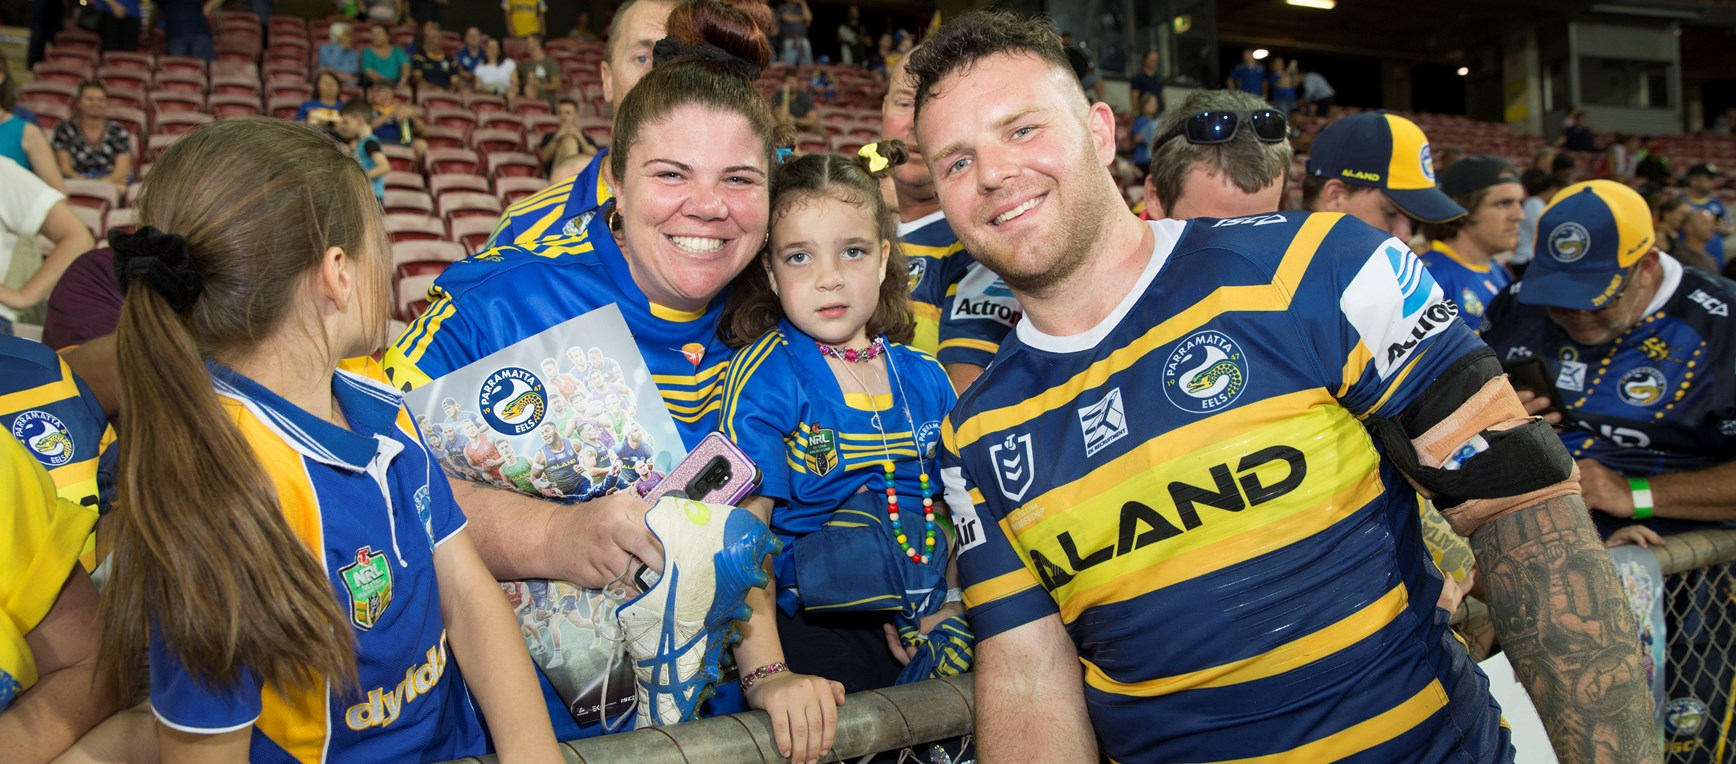 Eels v Raiders, Round 15 - Around the Grounds